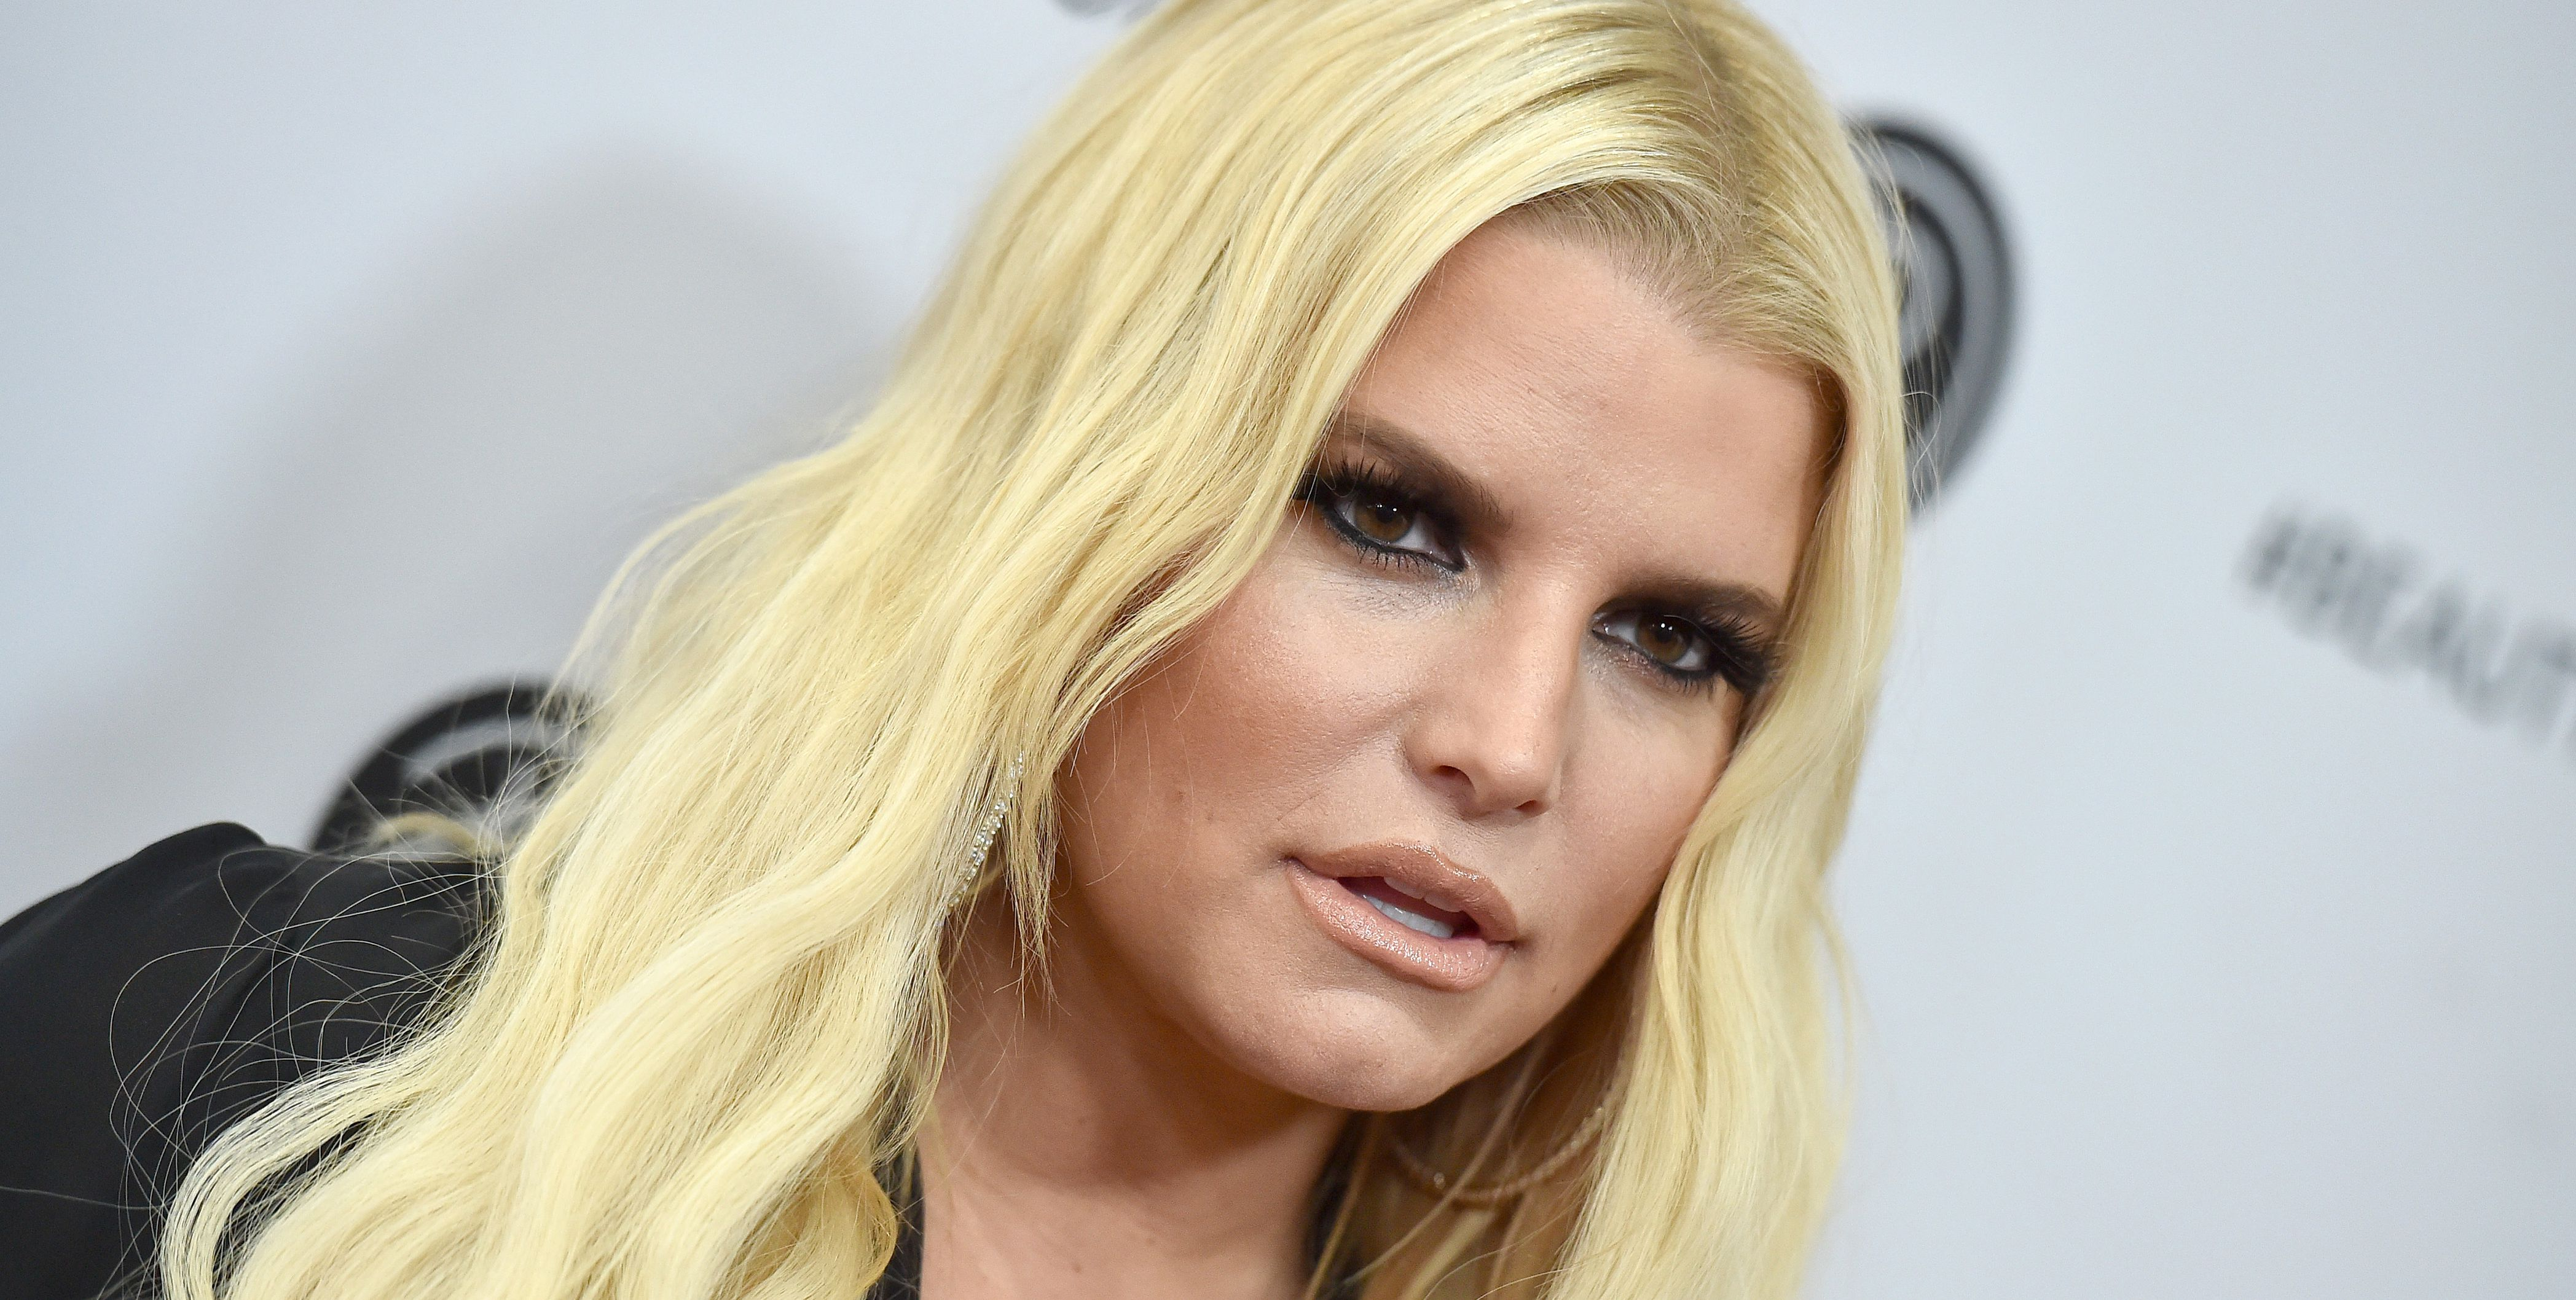 Jessica Simpson Just Shared A Scary Photo Of Her Severely Swollen Foot